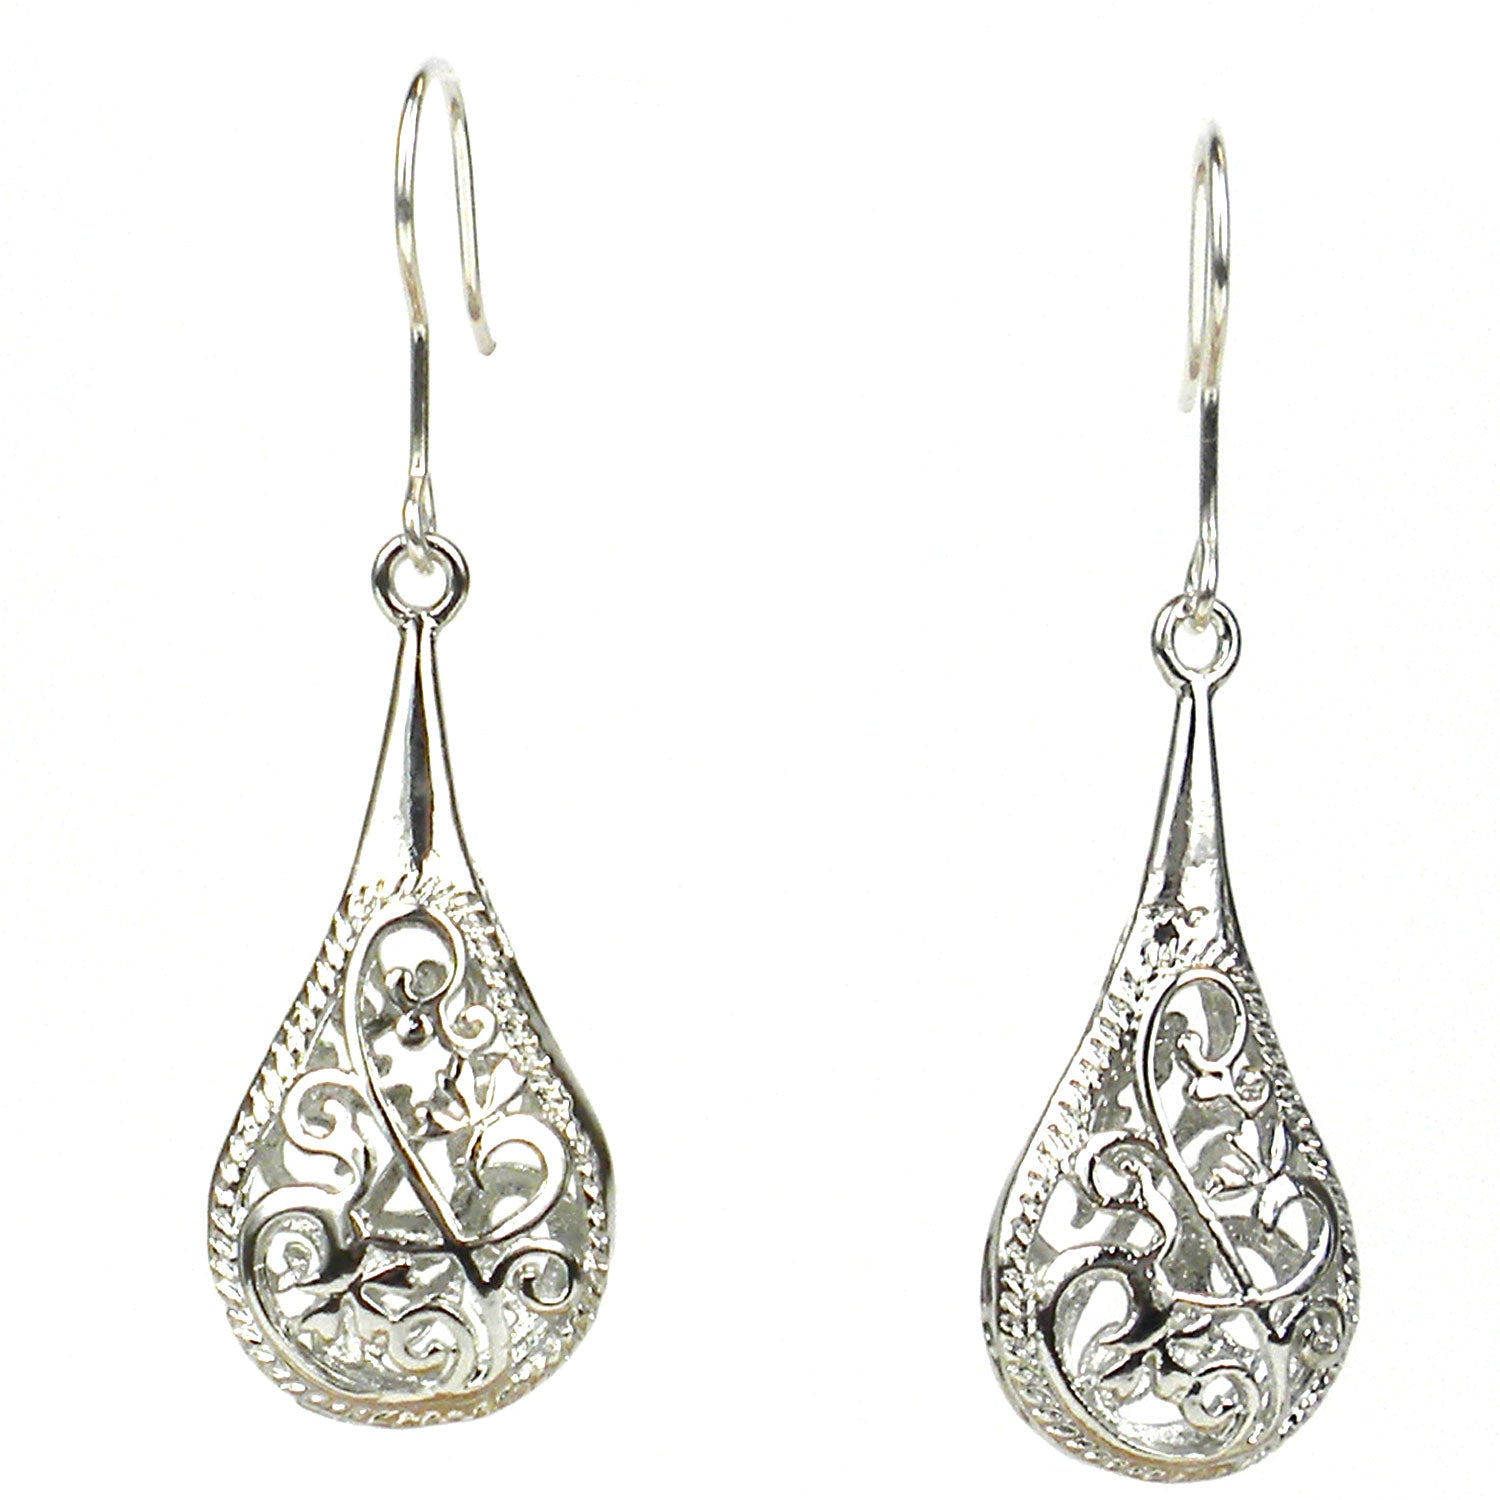 Silver Filigree Rain Earrings